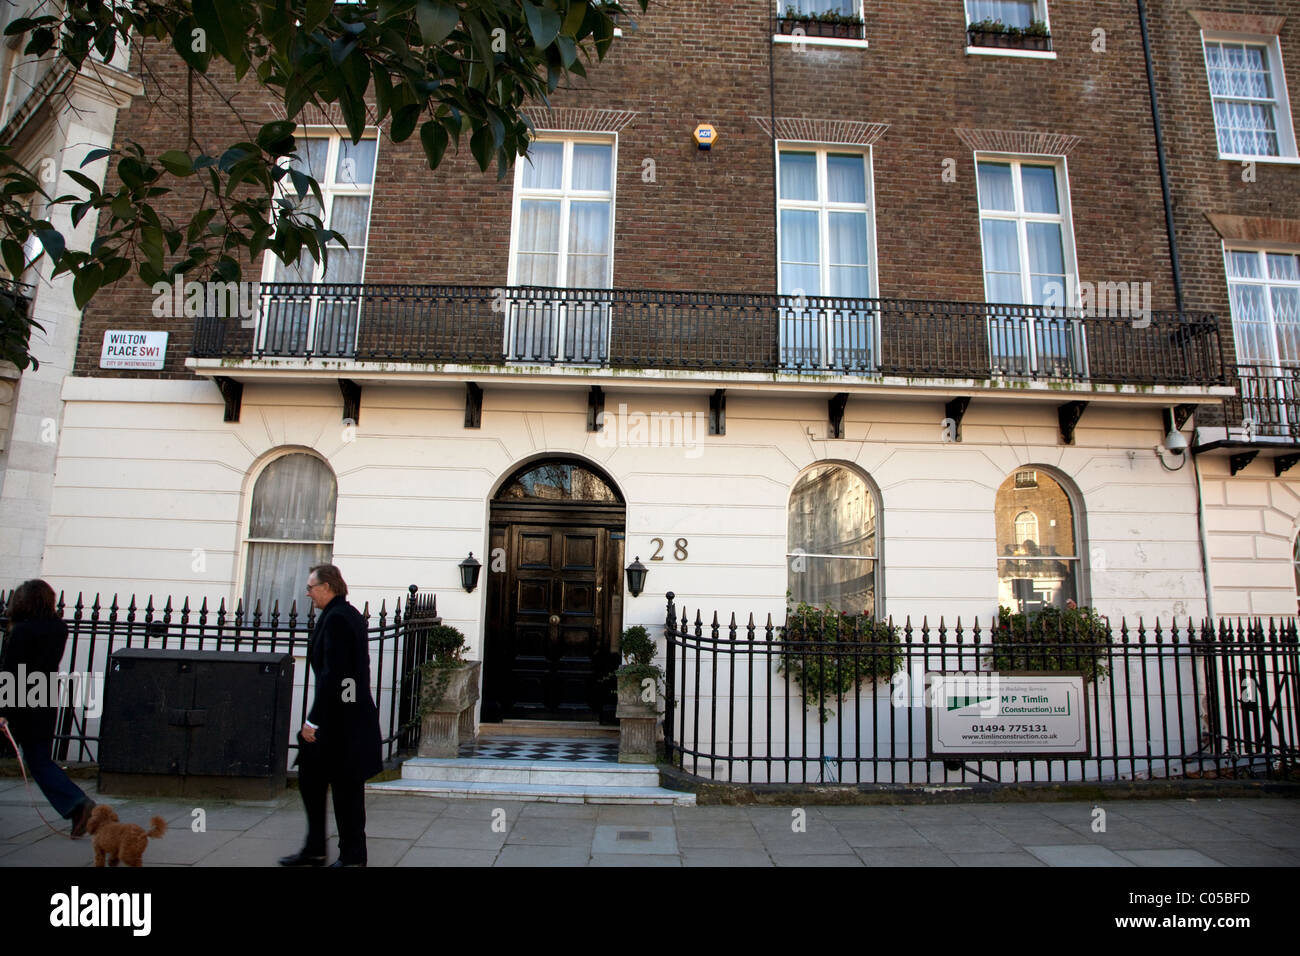 Belgravia townhouse in London said to be owned by Gamal Mubarak - Stock Image